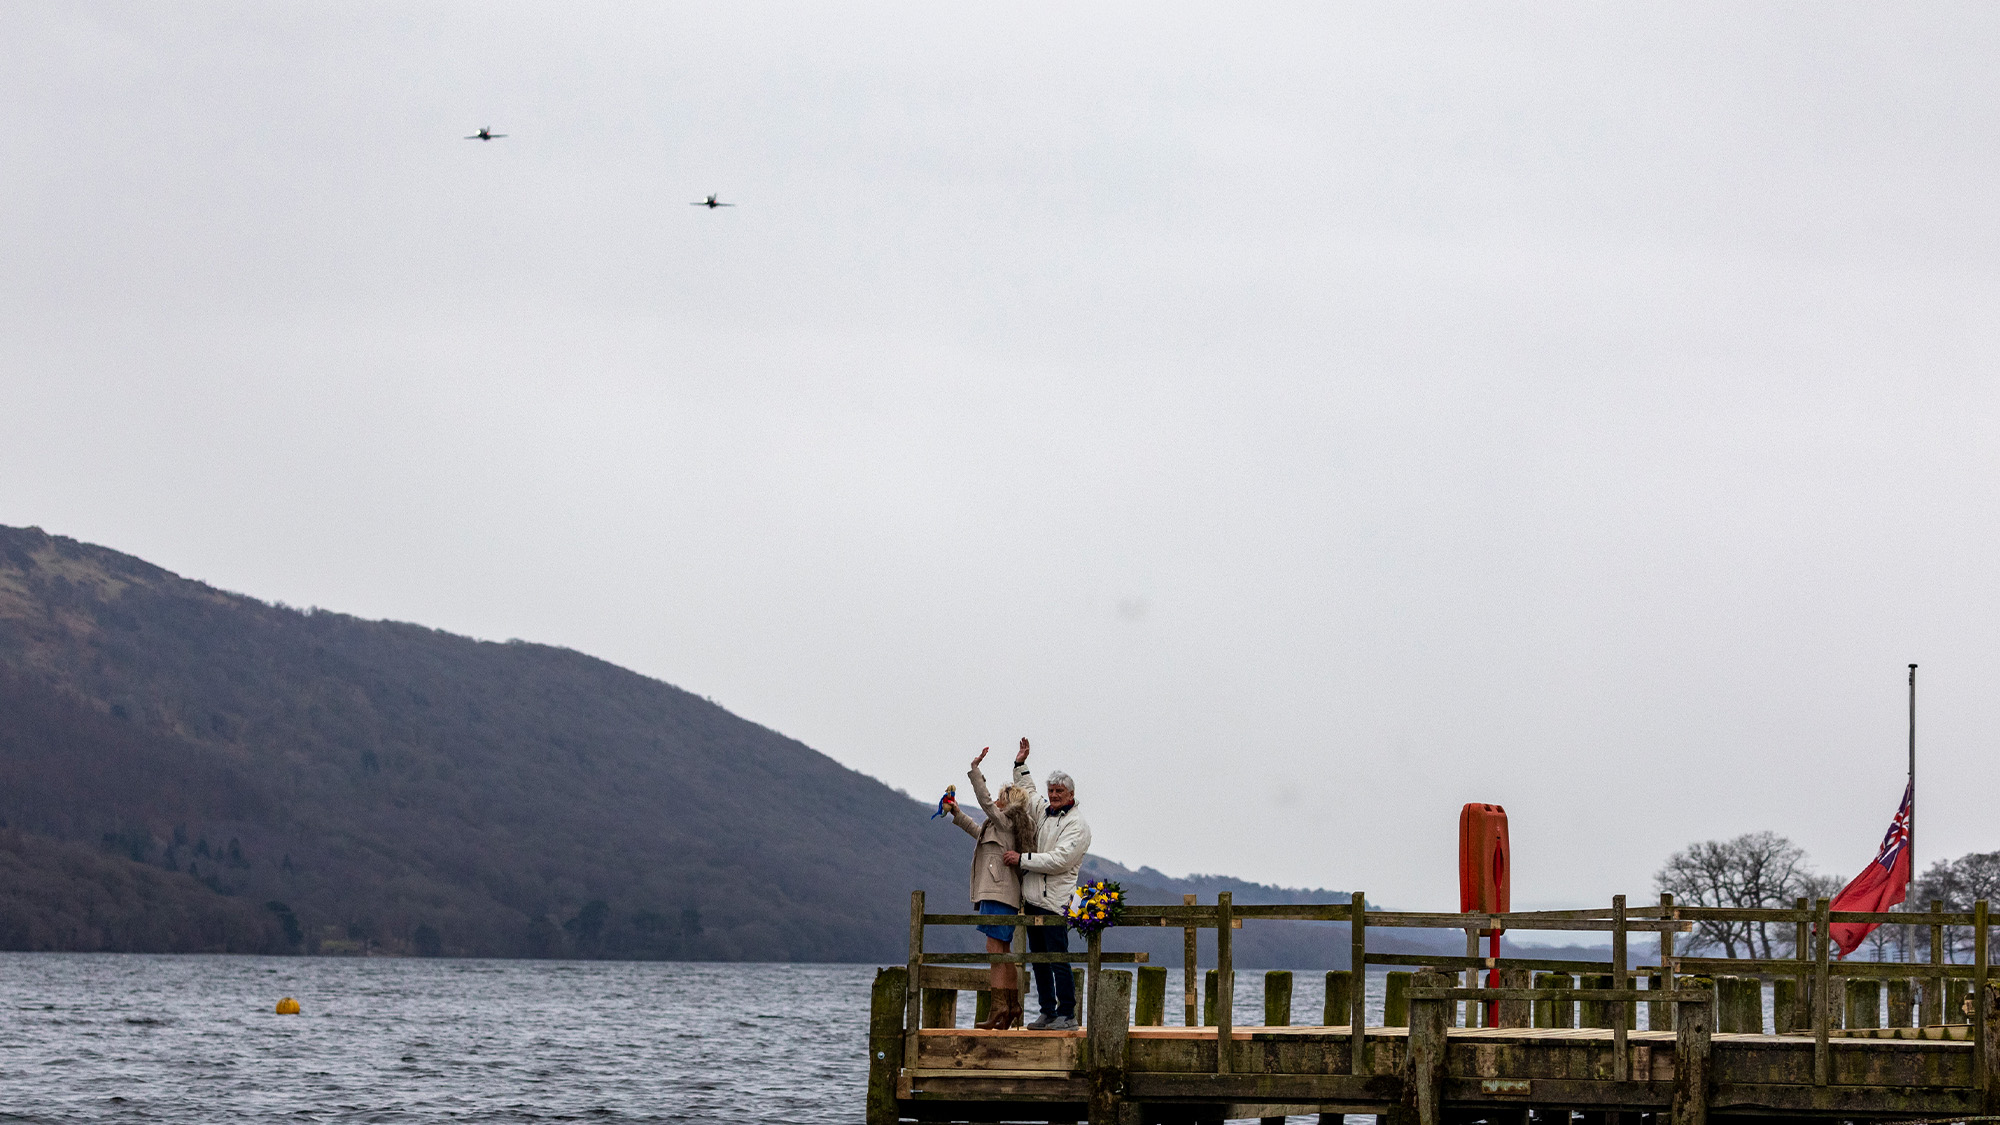 Donald Campbell RAF Tribute flight over Coniston Water